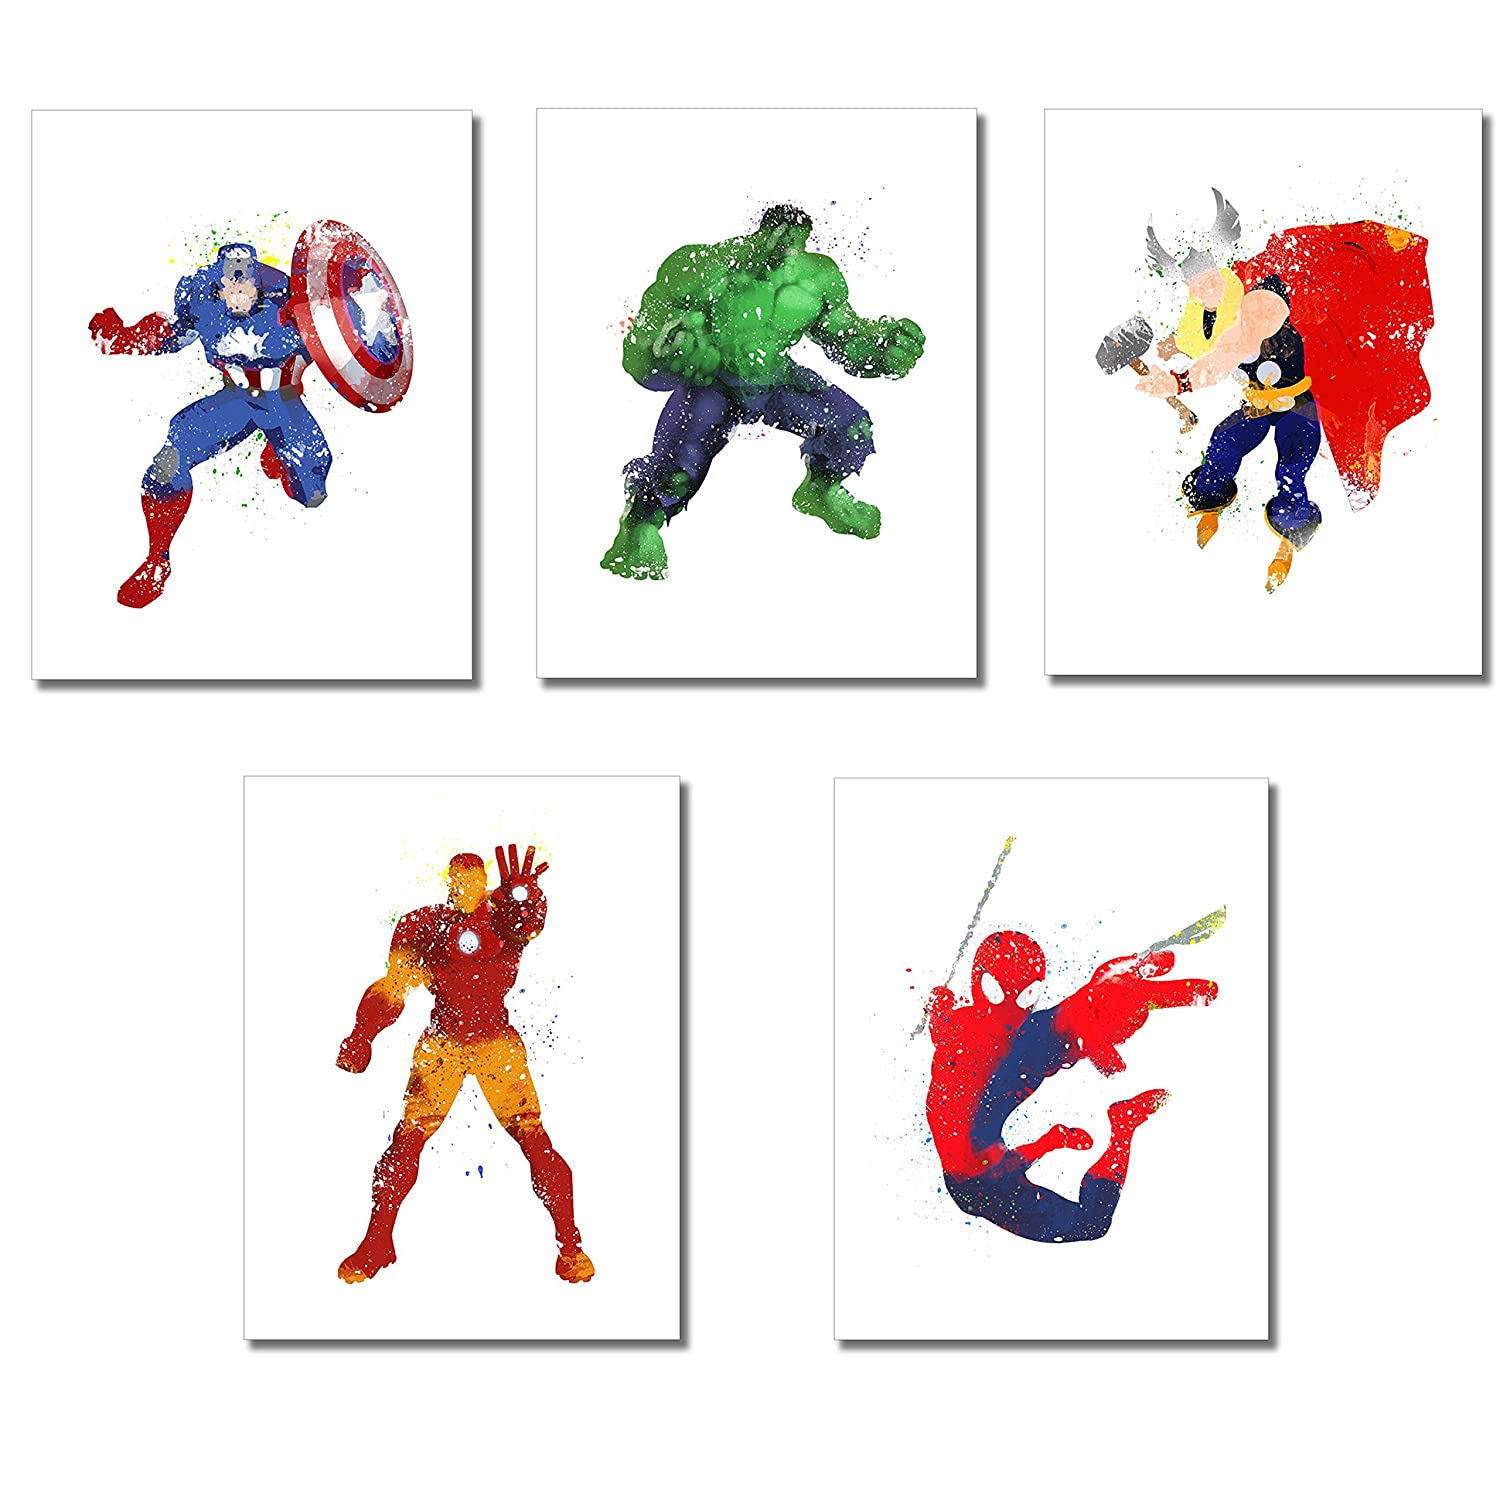 Superhero Watercolor Prints - Set of 5 Photos (8.5 inches x 11 inches)